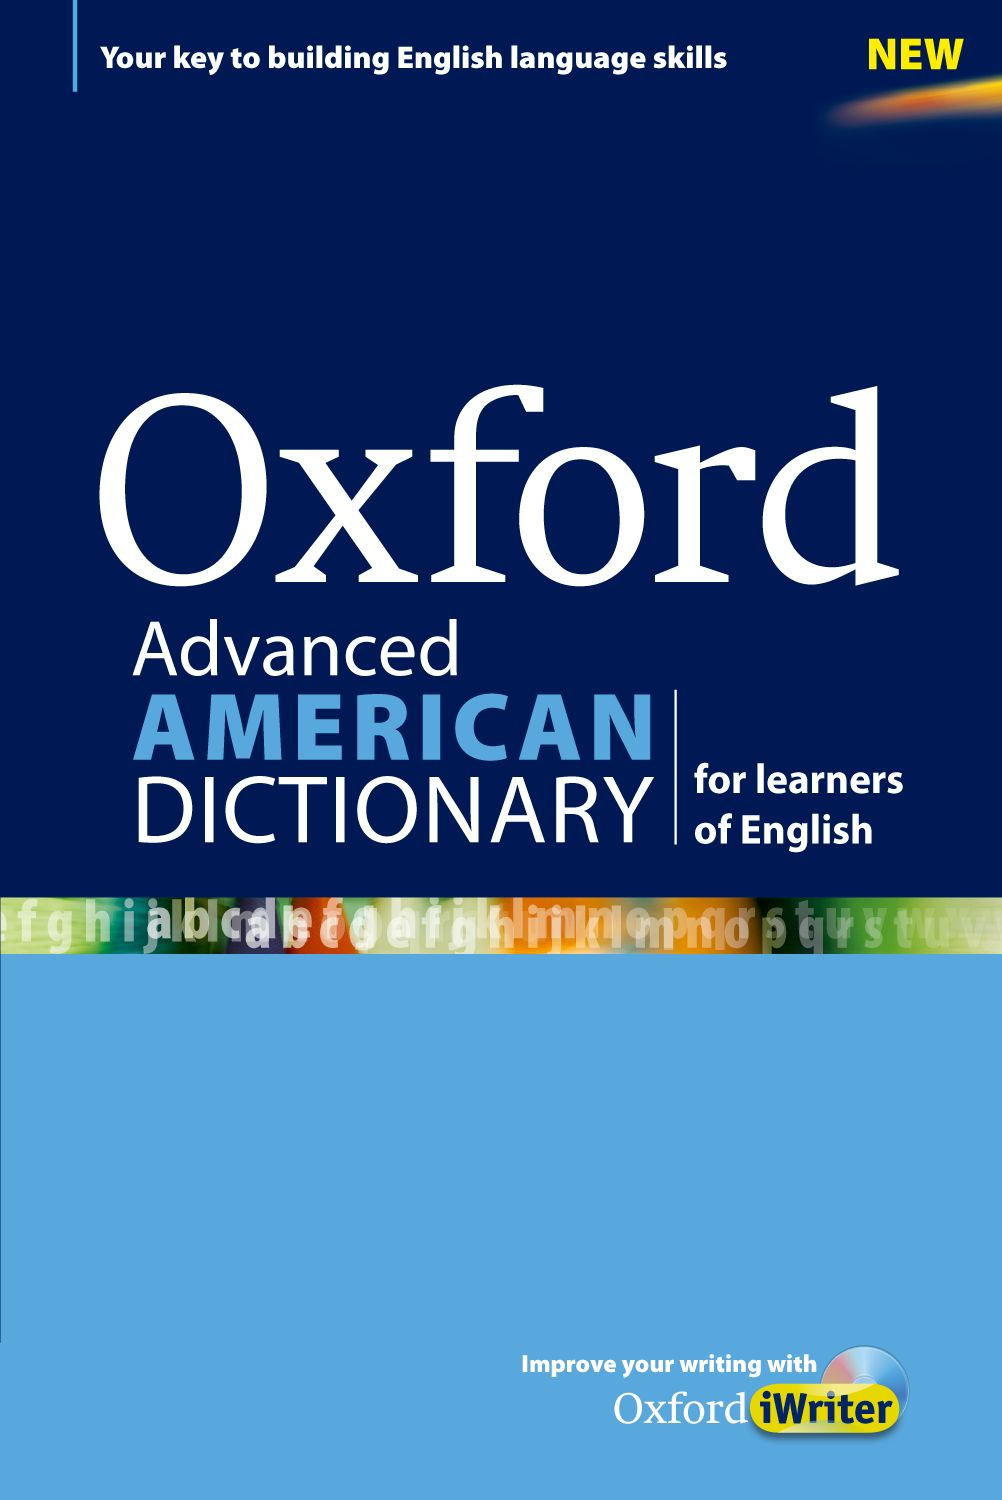 Oxford Advanced American Dictionary for Learners of English - 18214231 , 7106657757953 , 62_22676242 , 462000 , Oxford-Advanced-American-Dictionary-for-Learners-of-English-62_22676242 , tiki.vn , Oxford Advanced American Dictionary for Learners of English